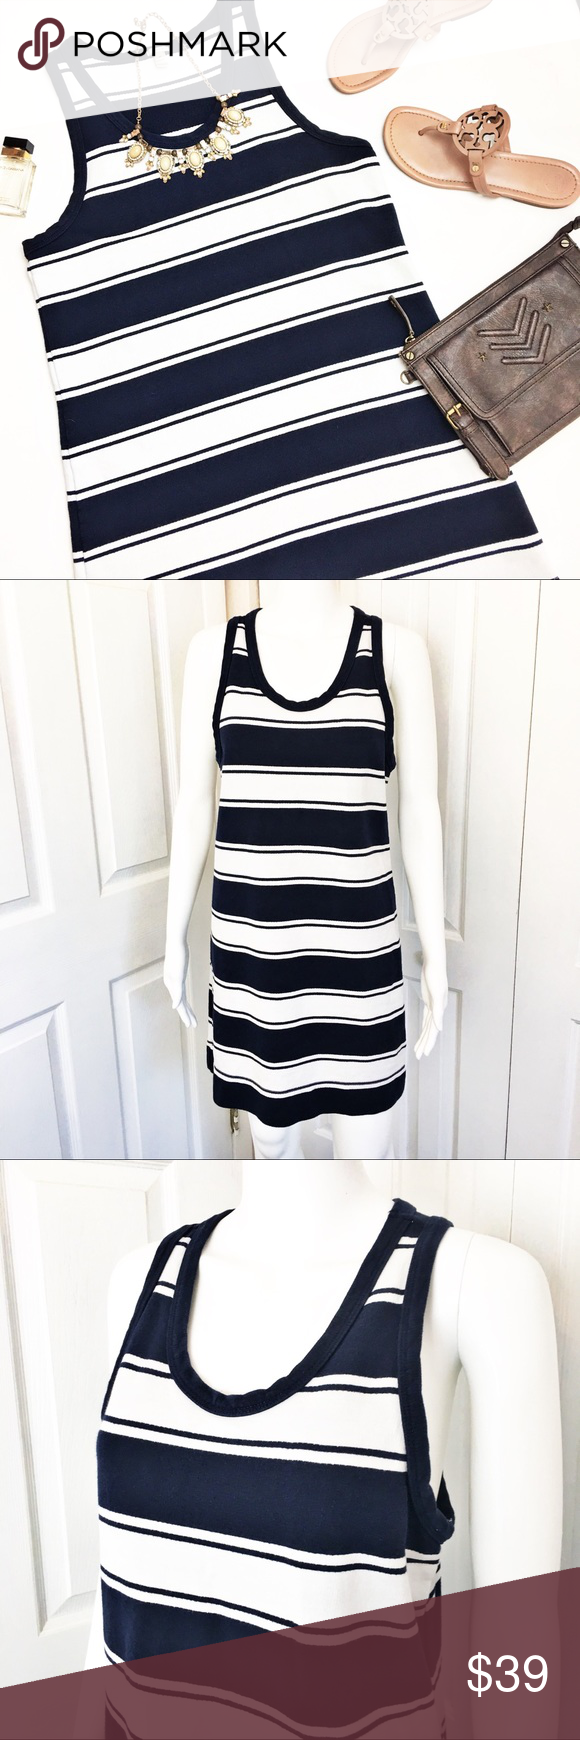 J Crew Rugby Stripe Tank Dress Navy Blue And White Striped By